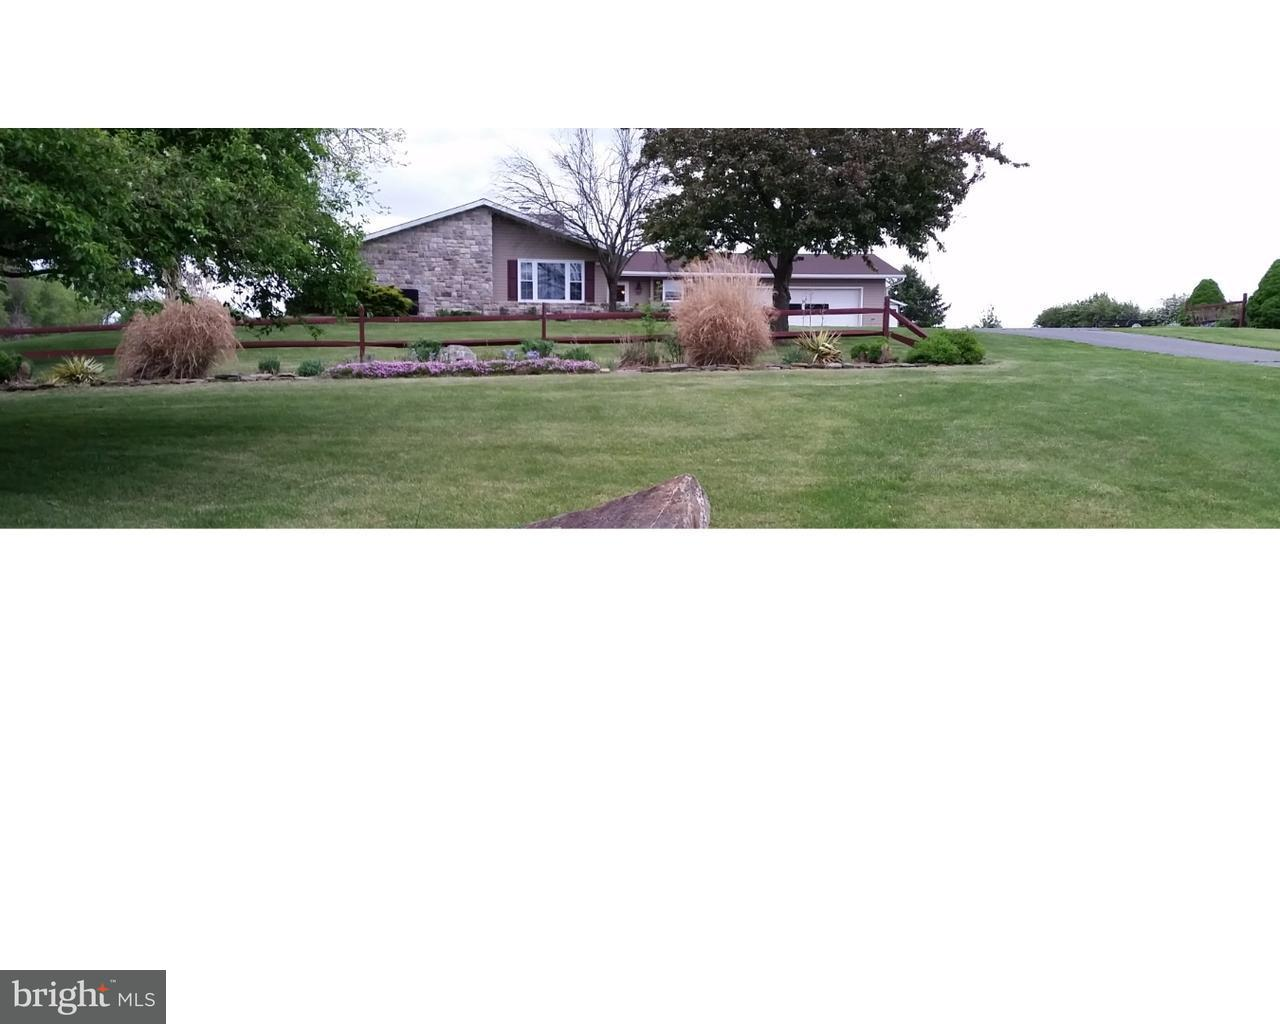 99 MAIN ST, OLEY - Listed at $279,900, OLEY